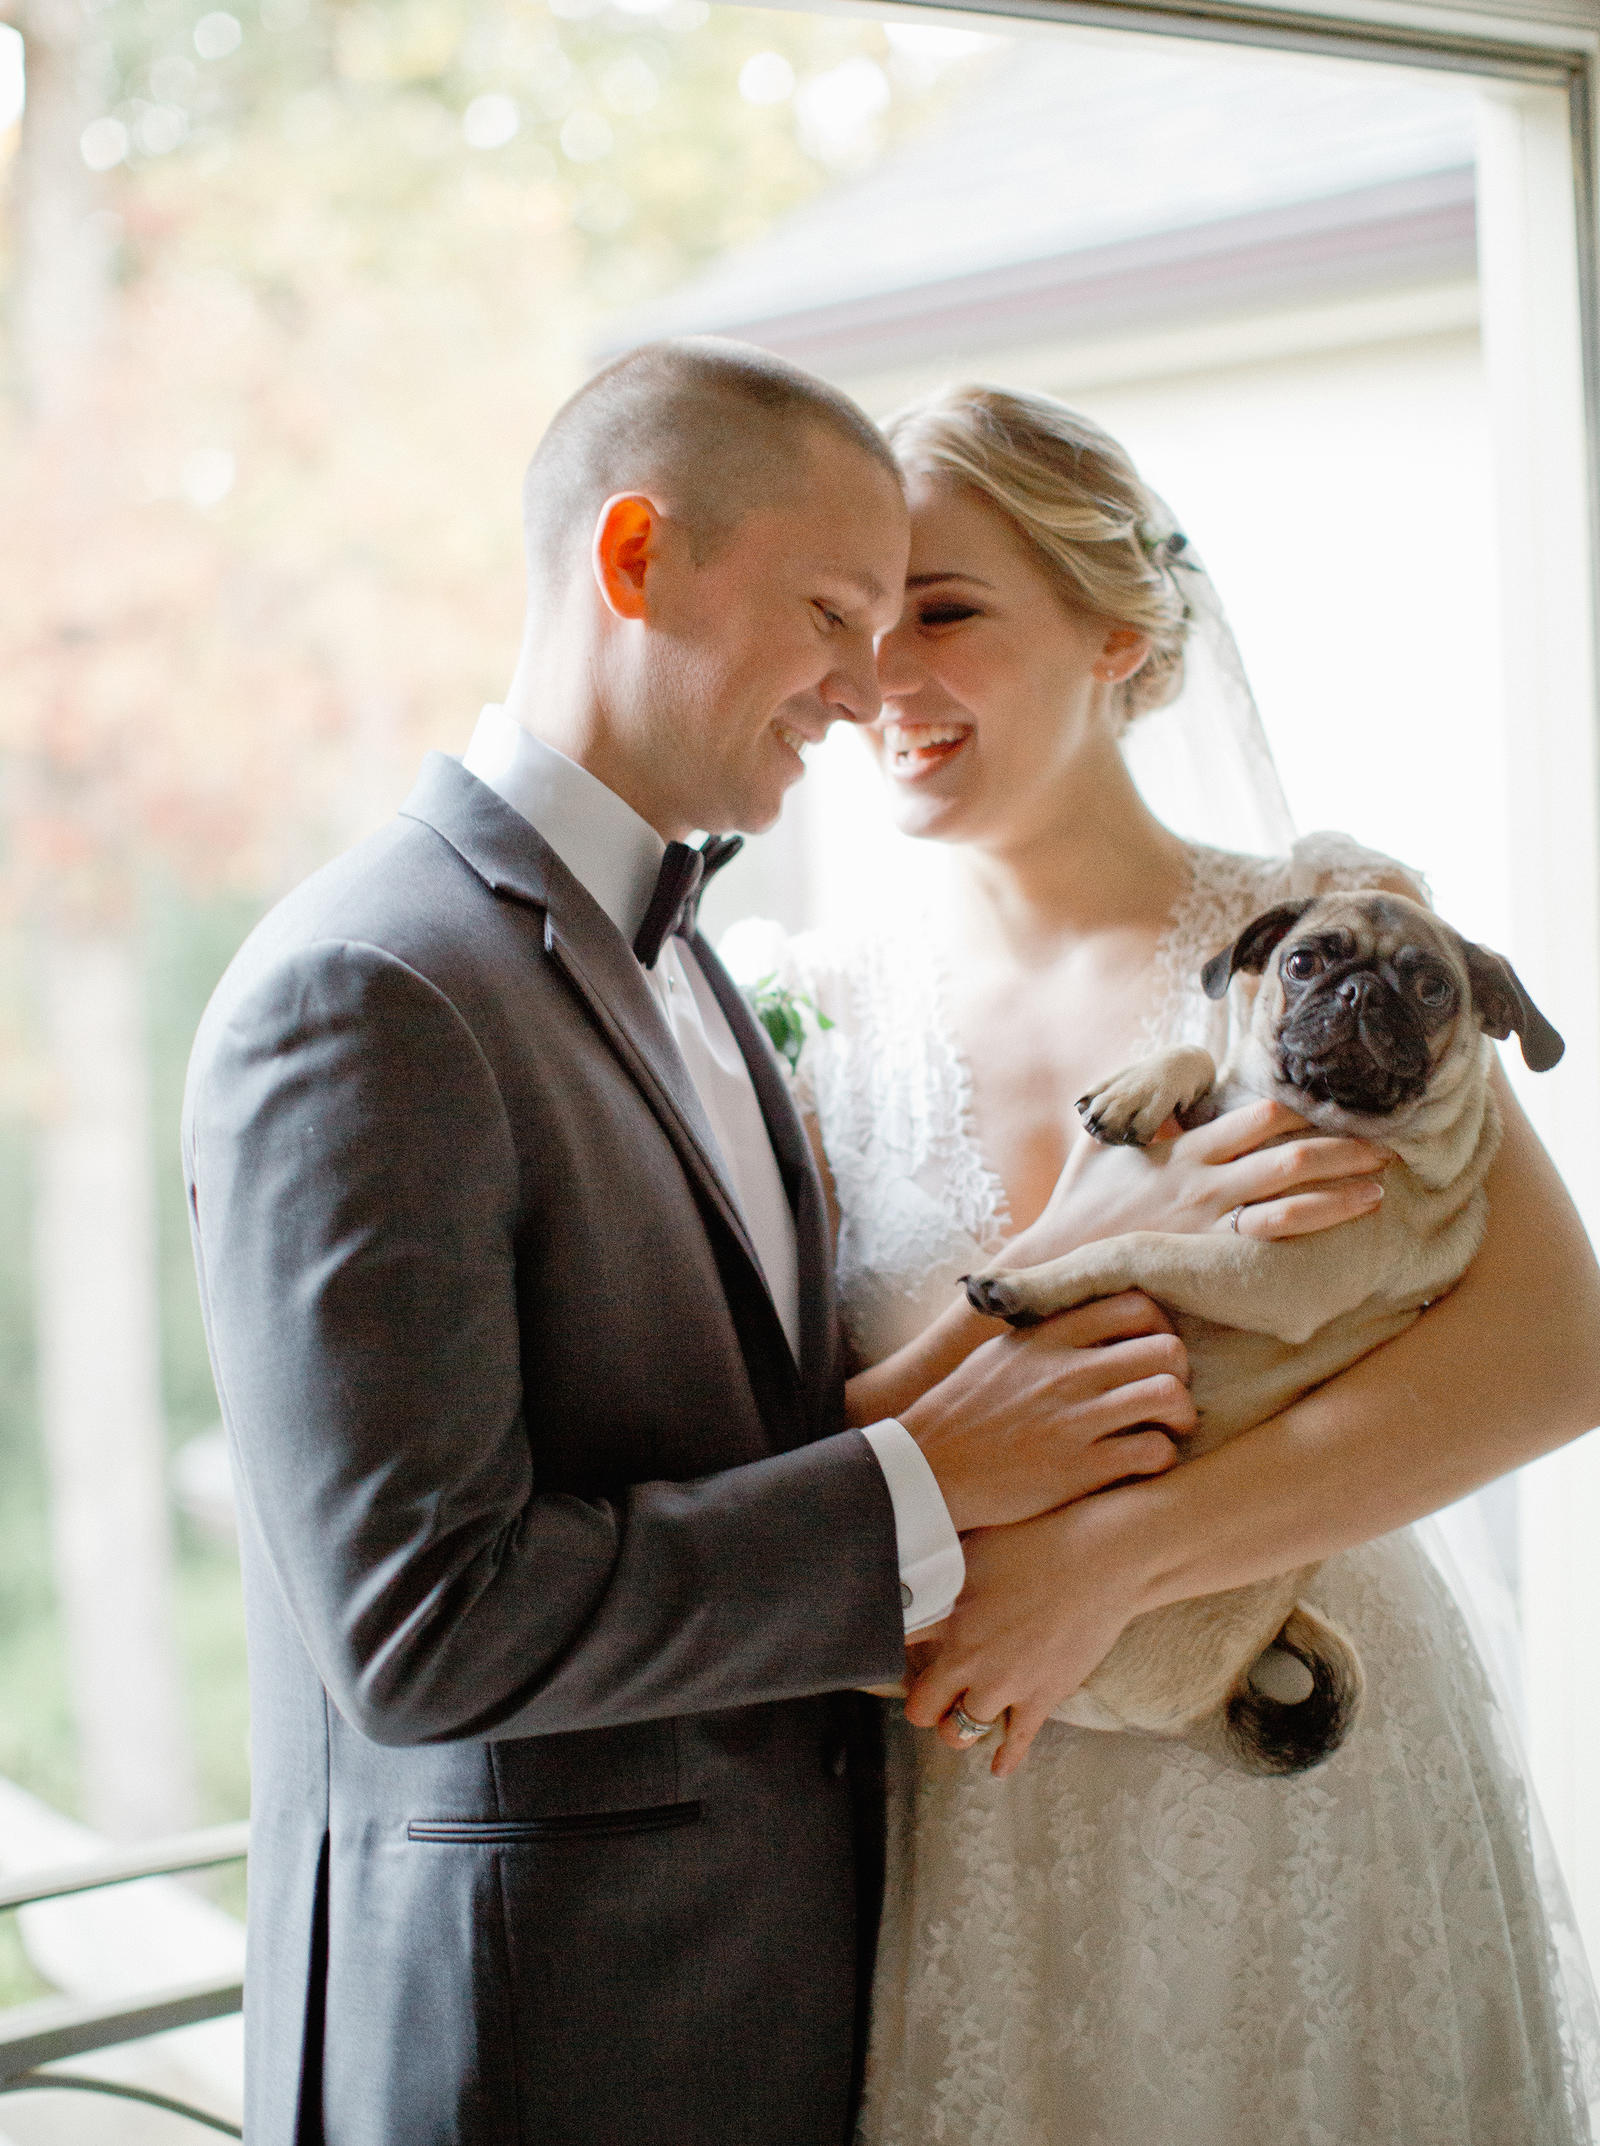 Wedding Photography | A bride and her groom share a laugh while holding their dog.